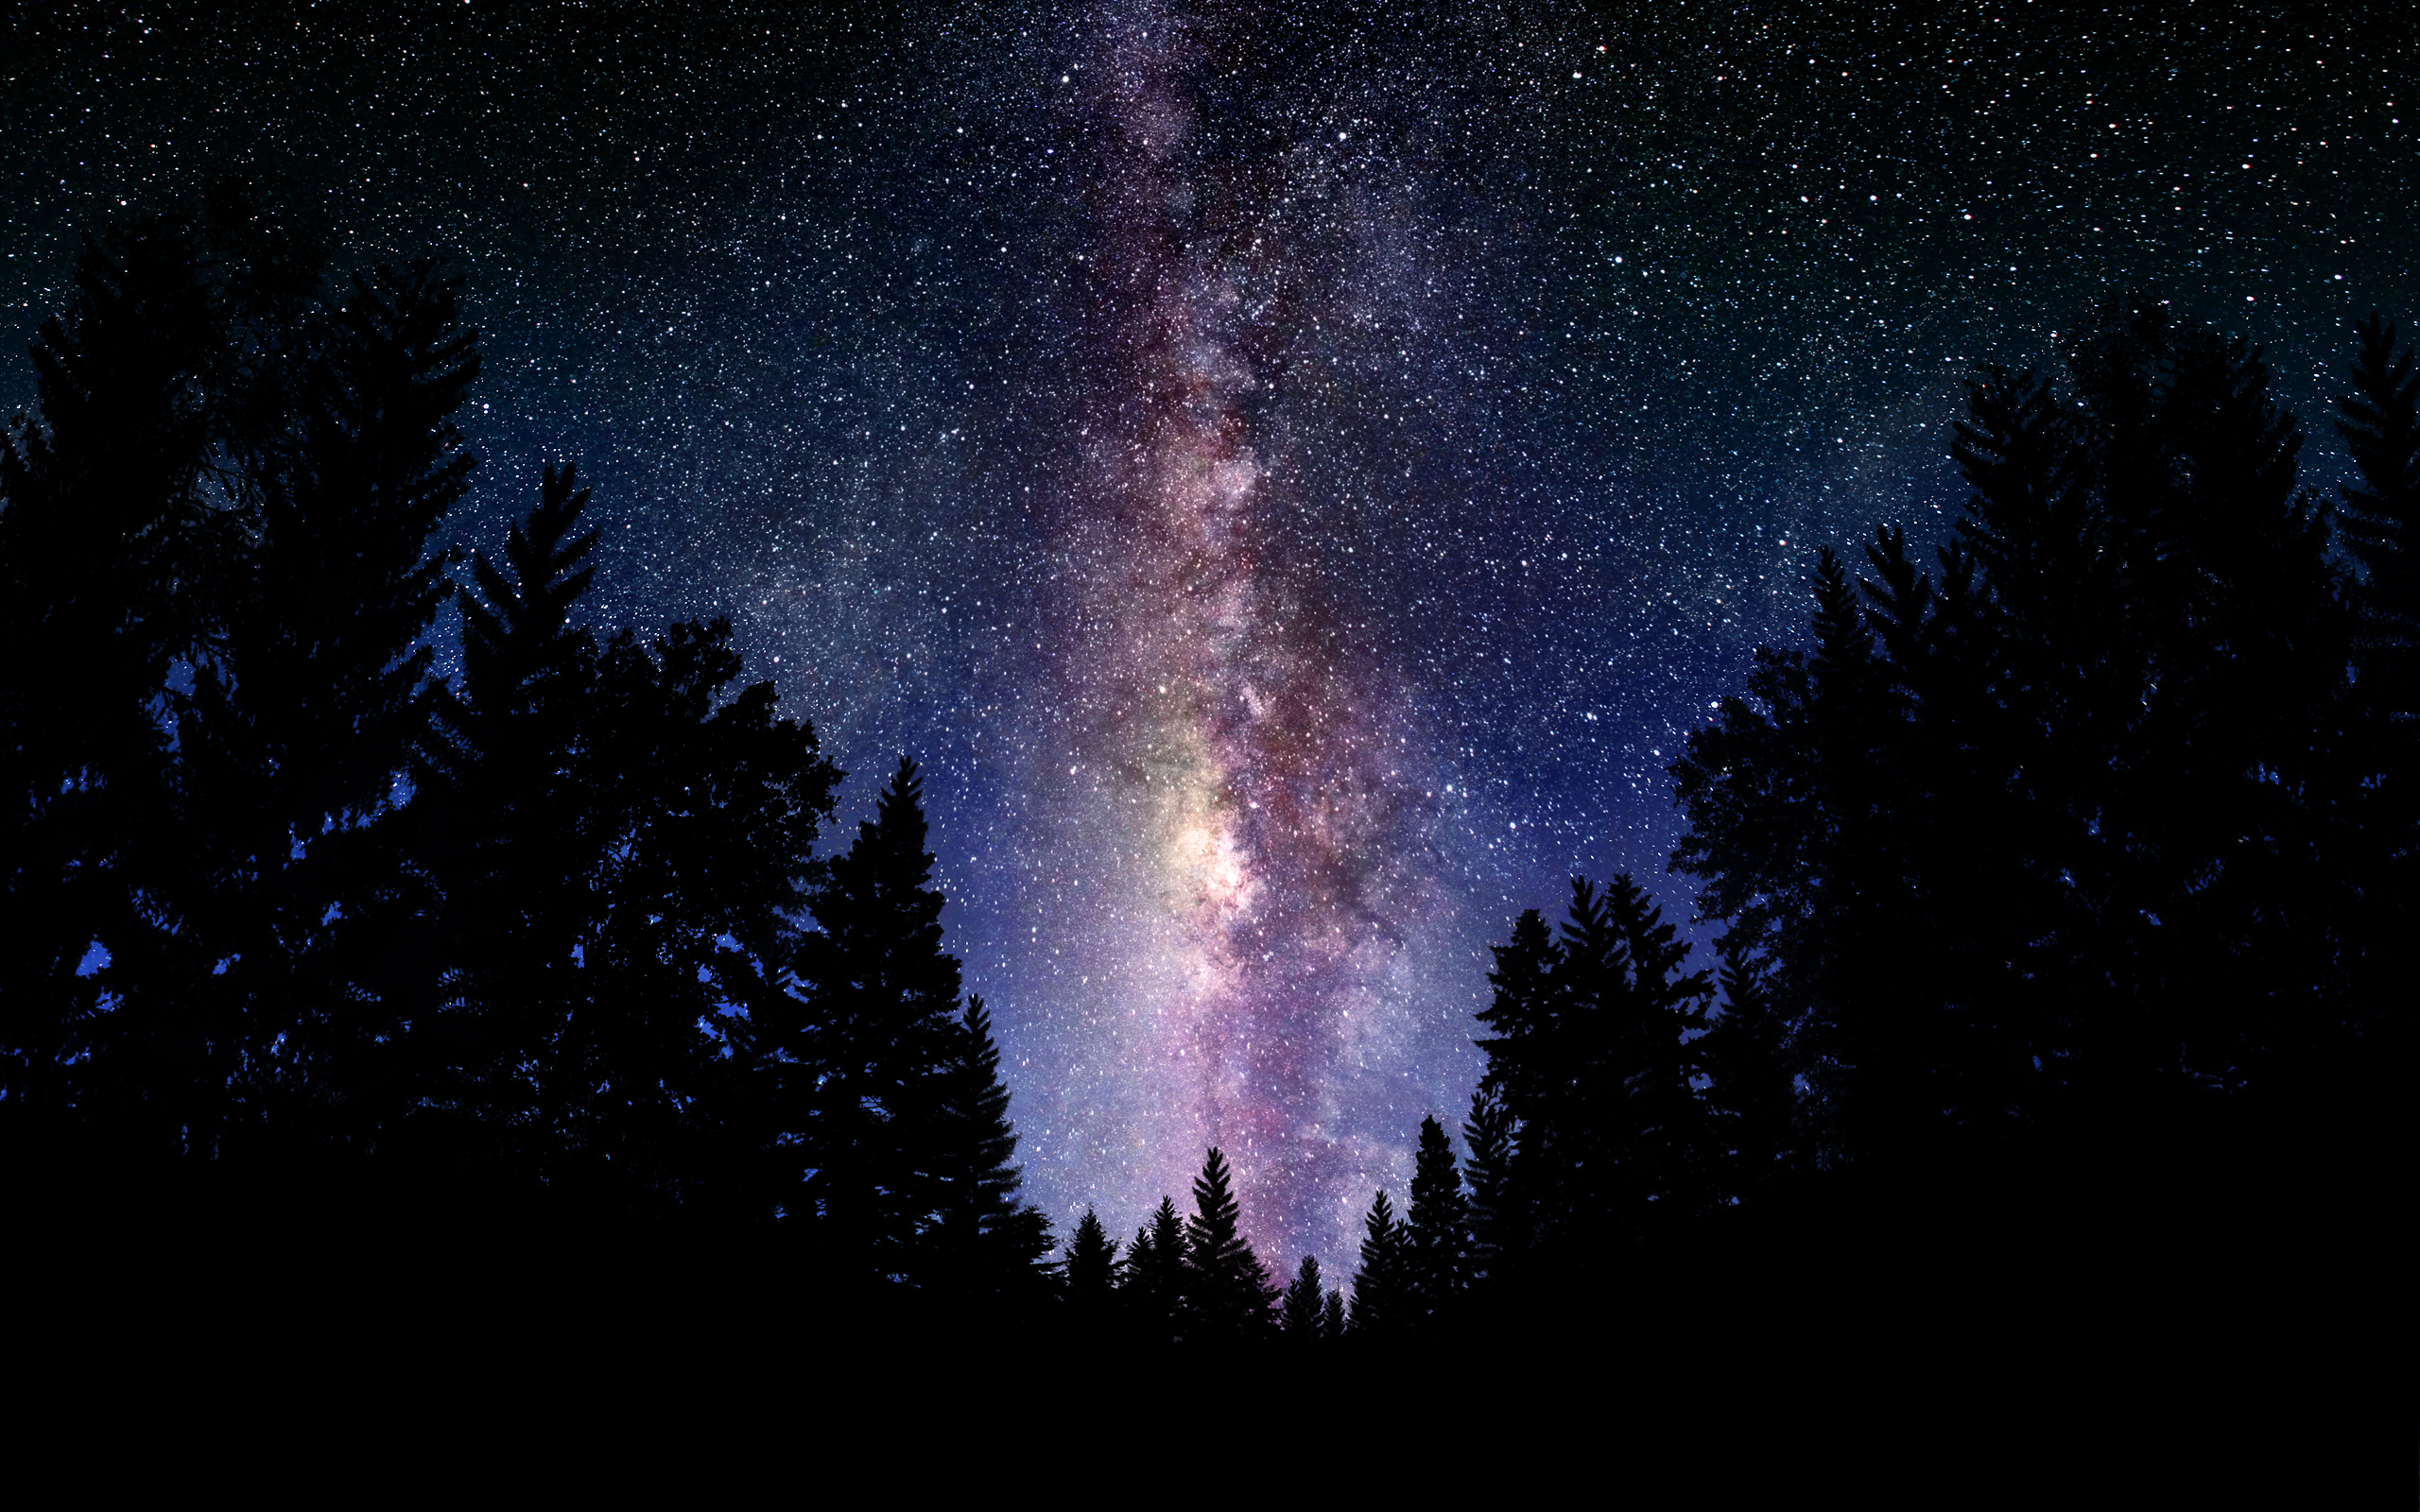 wallpaper Starry Night sky over the forest Wallpapers 3d for desktop 2560x1600